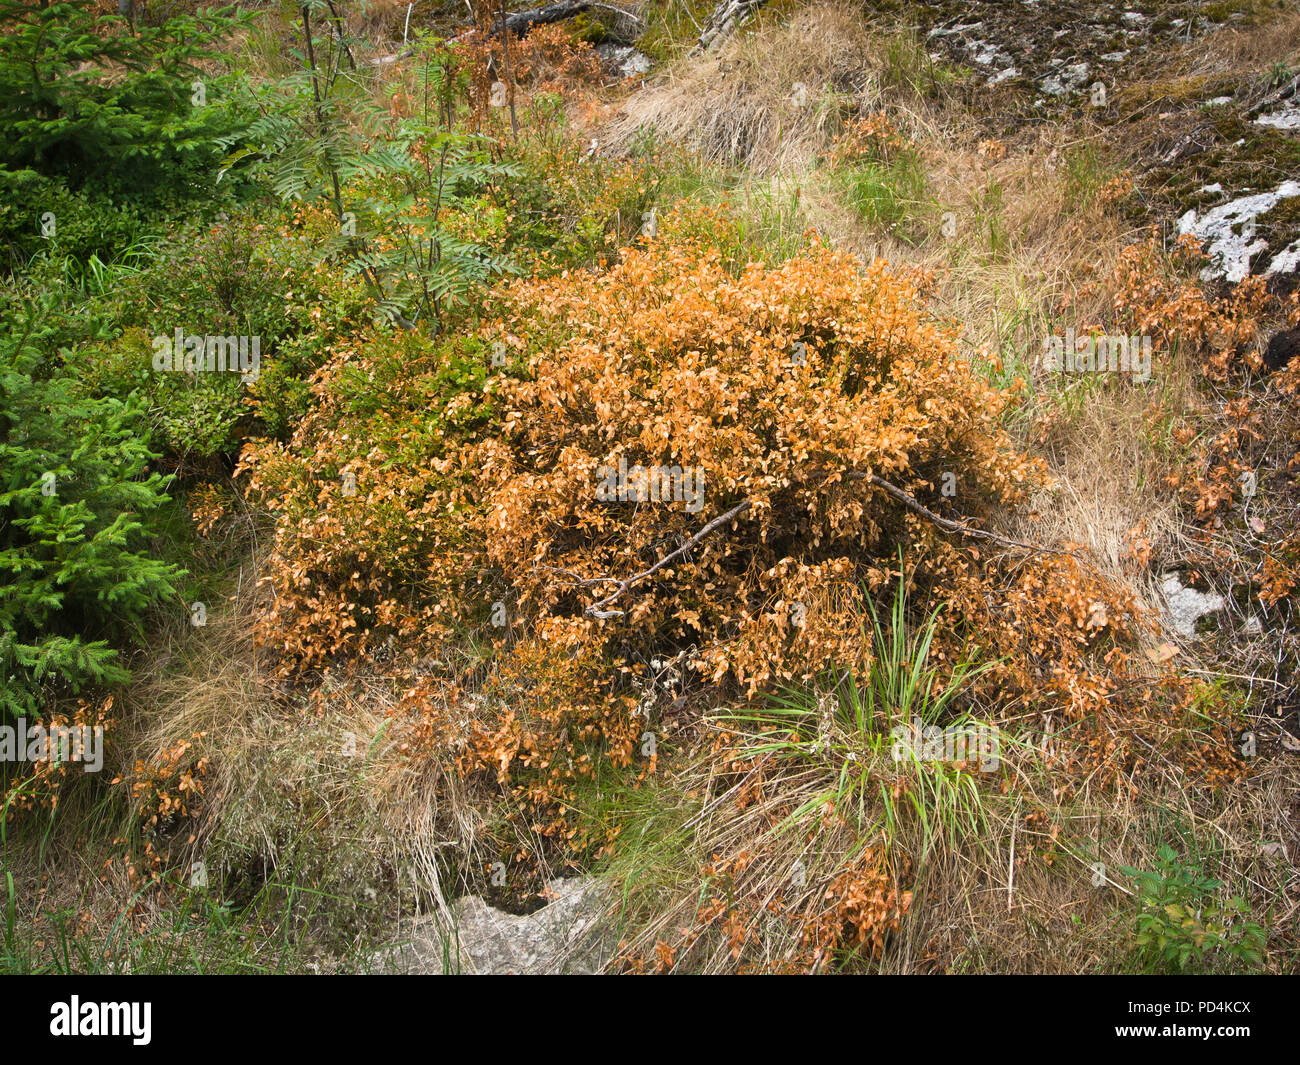 The effects of an extreme dry and hot summer observed easily in the forests around Oslo Norway, dried out and dead European blueberry plants - Stock Image